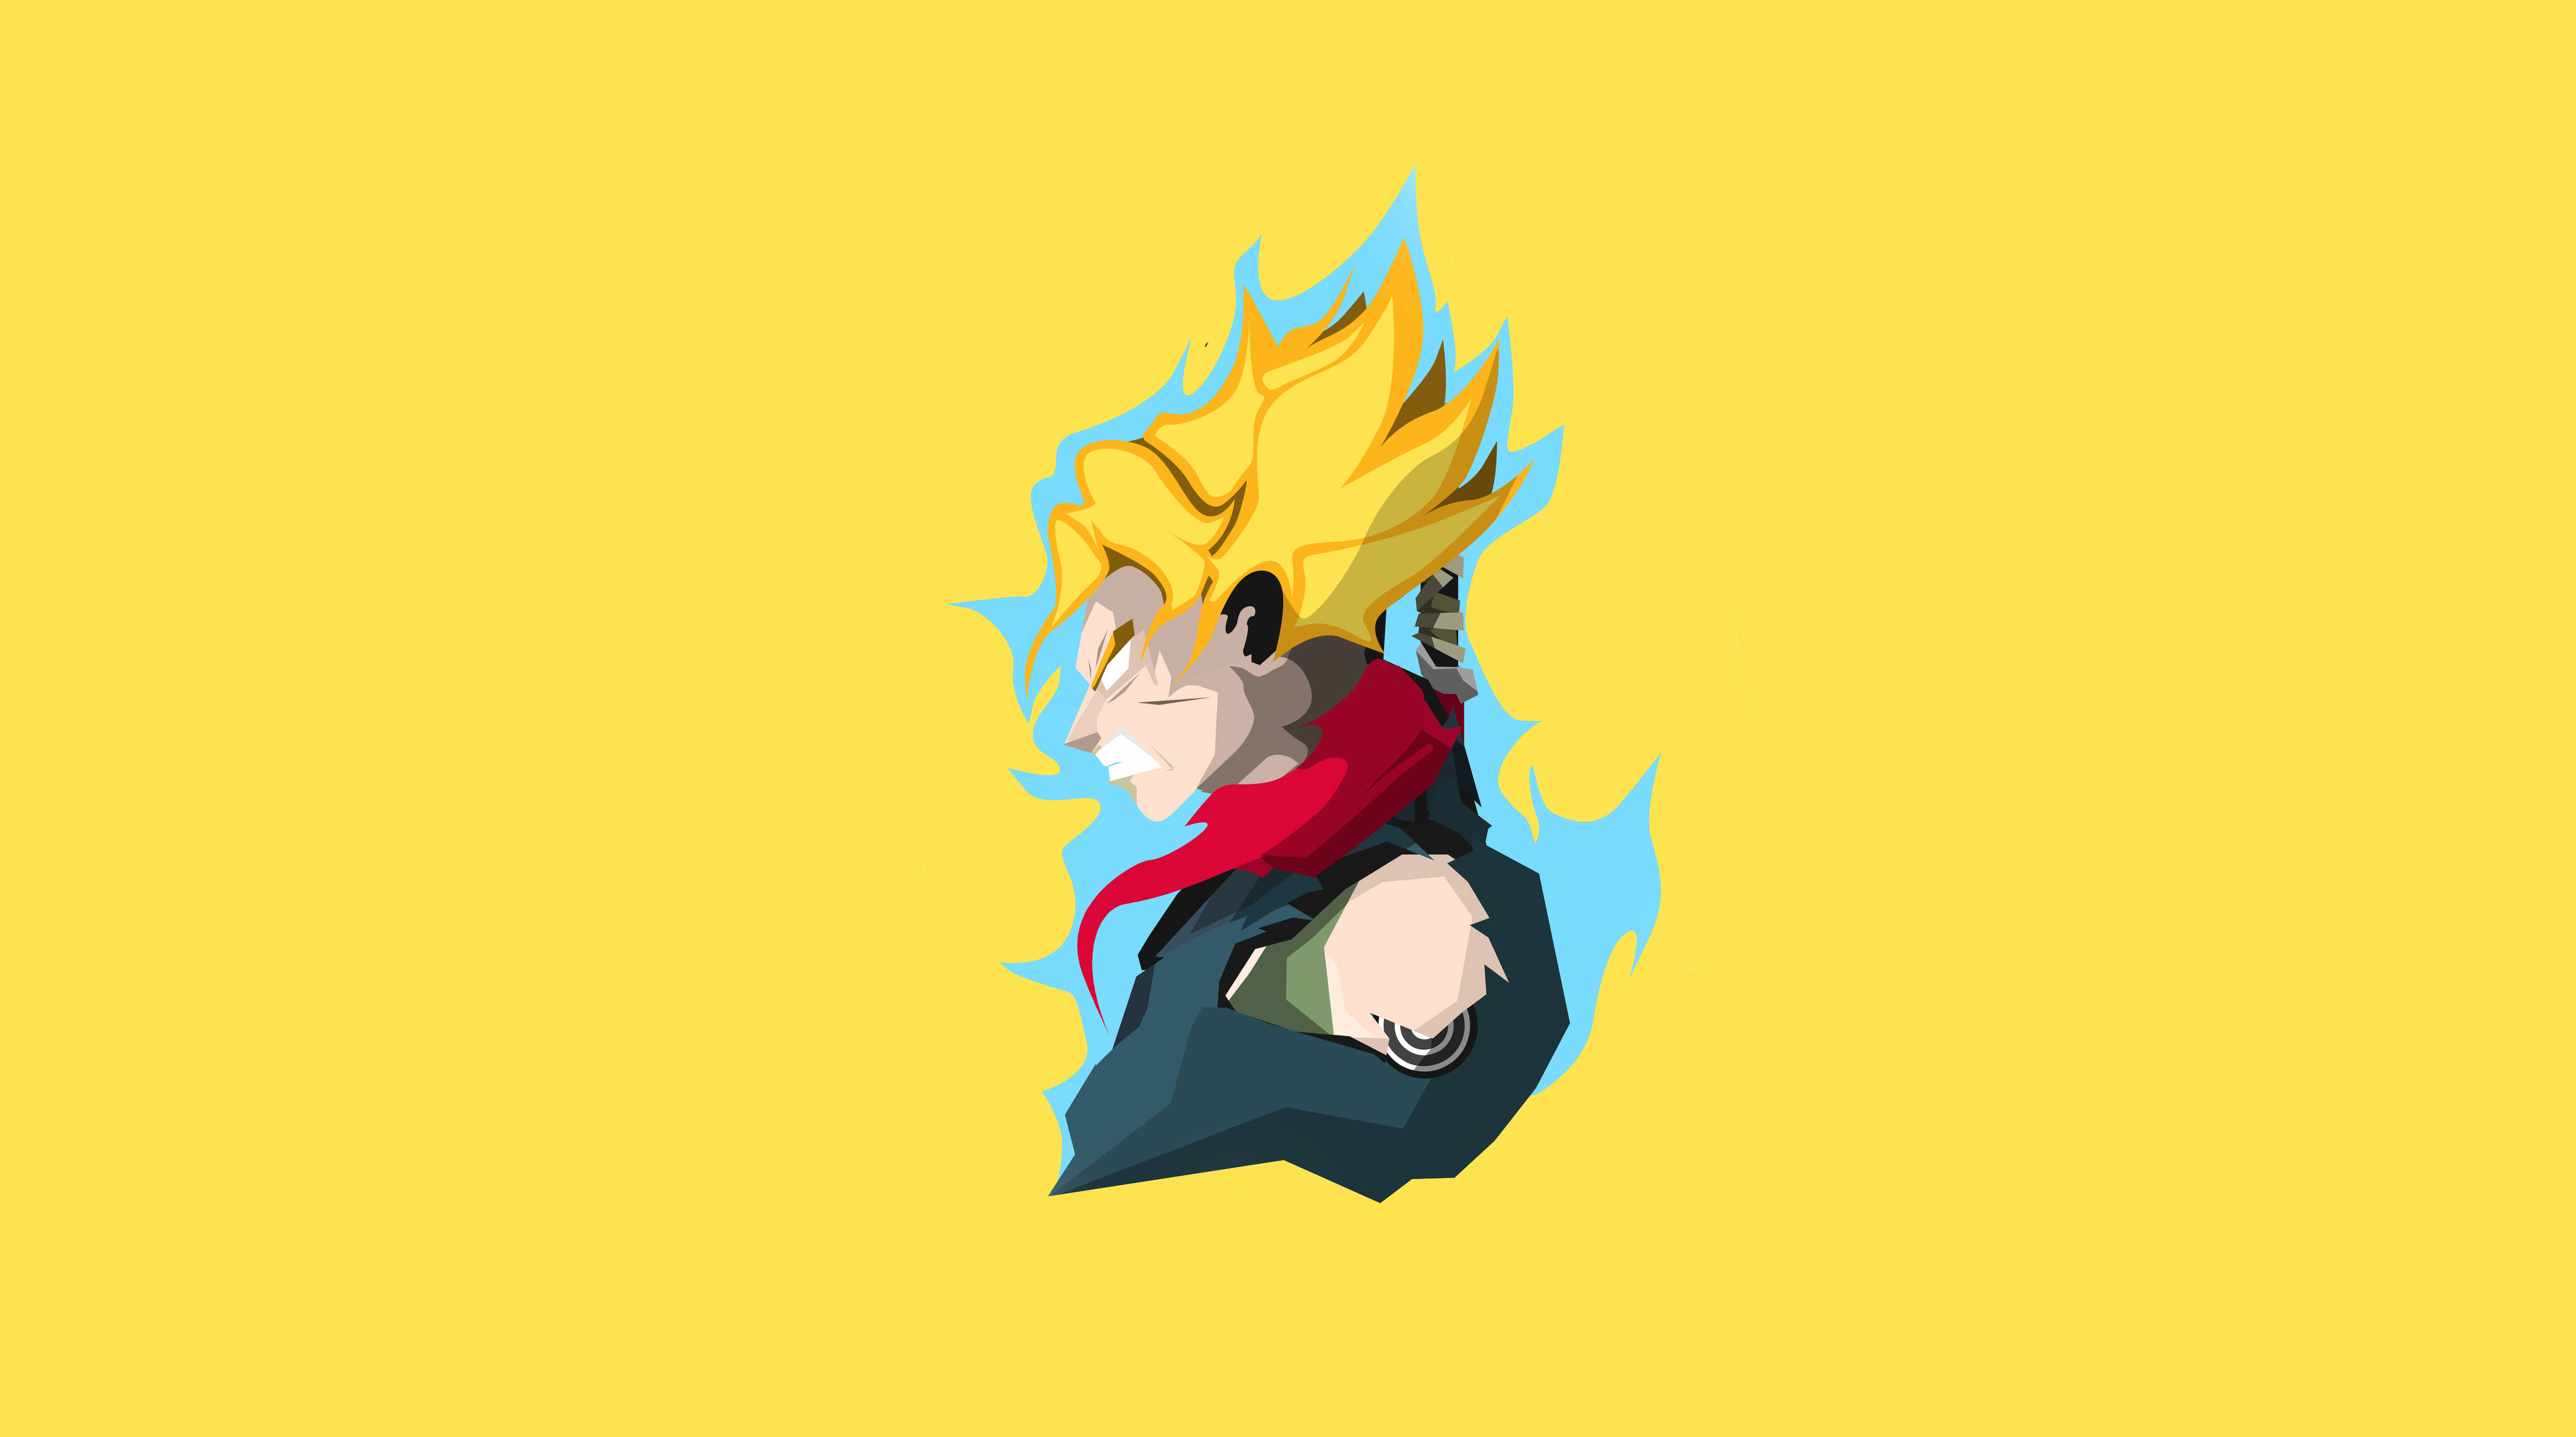 Dragon Ball Z Minimalist Wallpaper Posted By Sarah Simpson